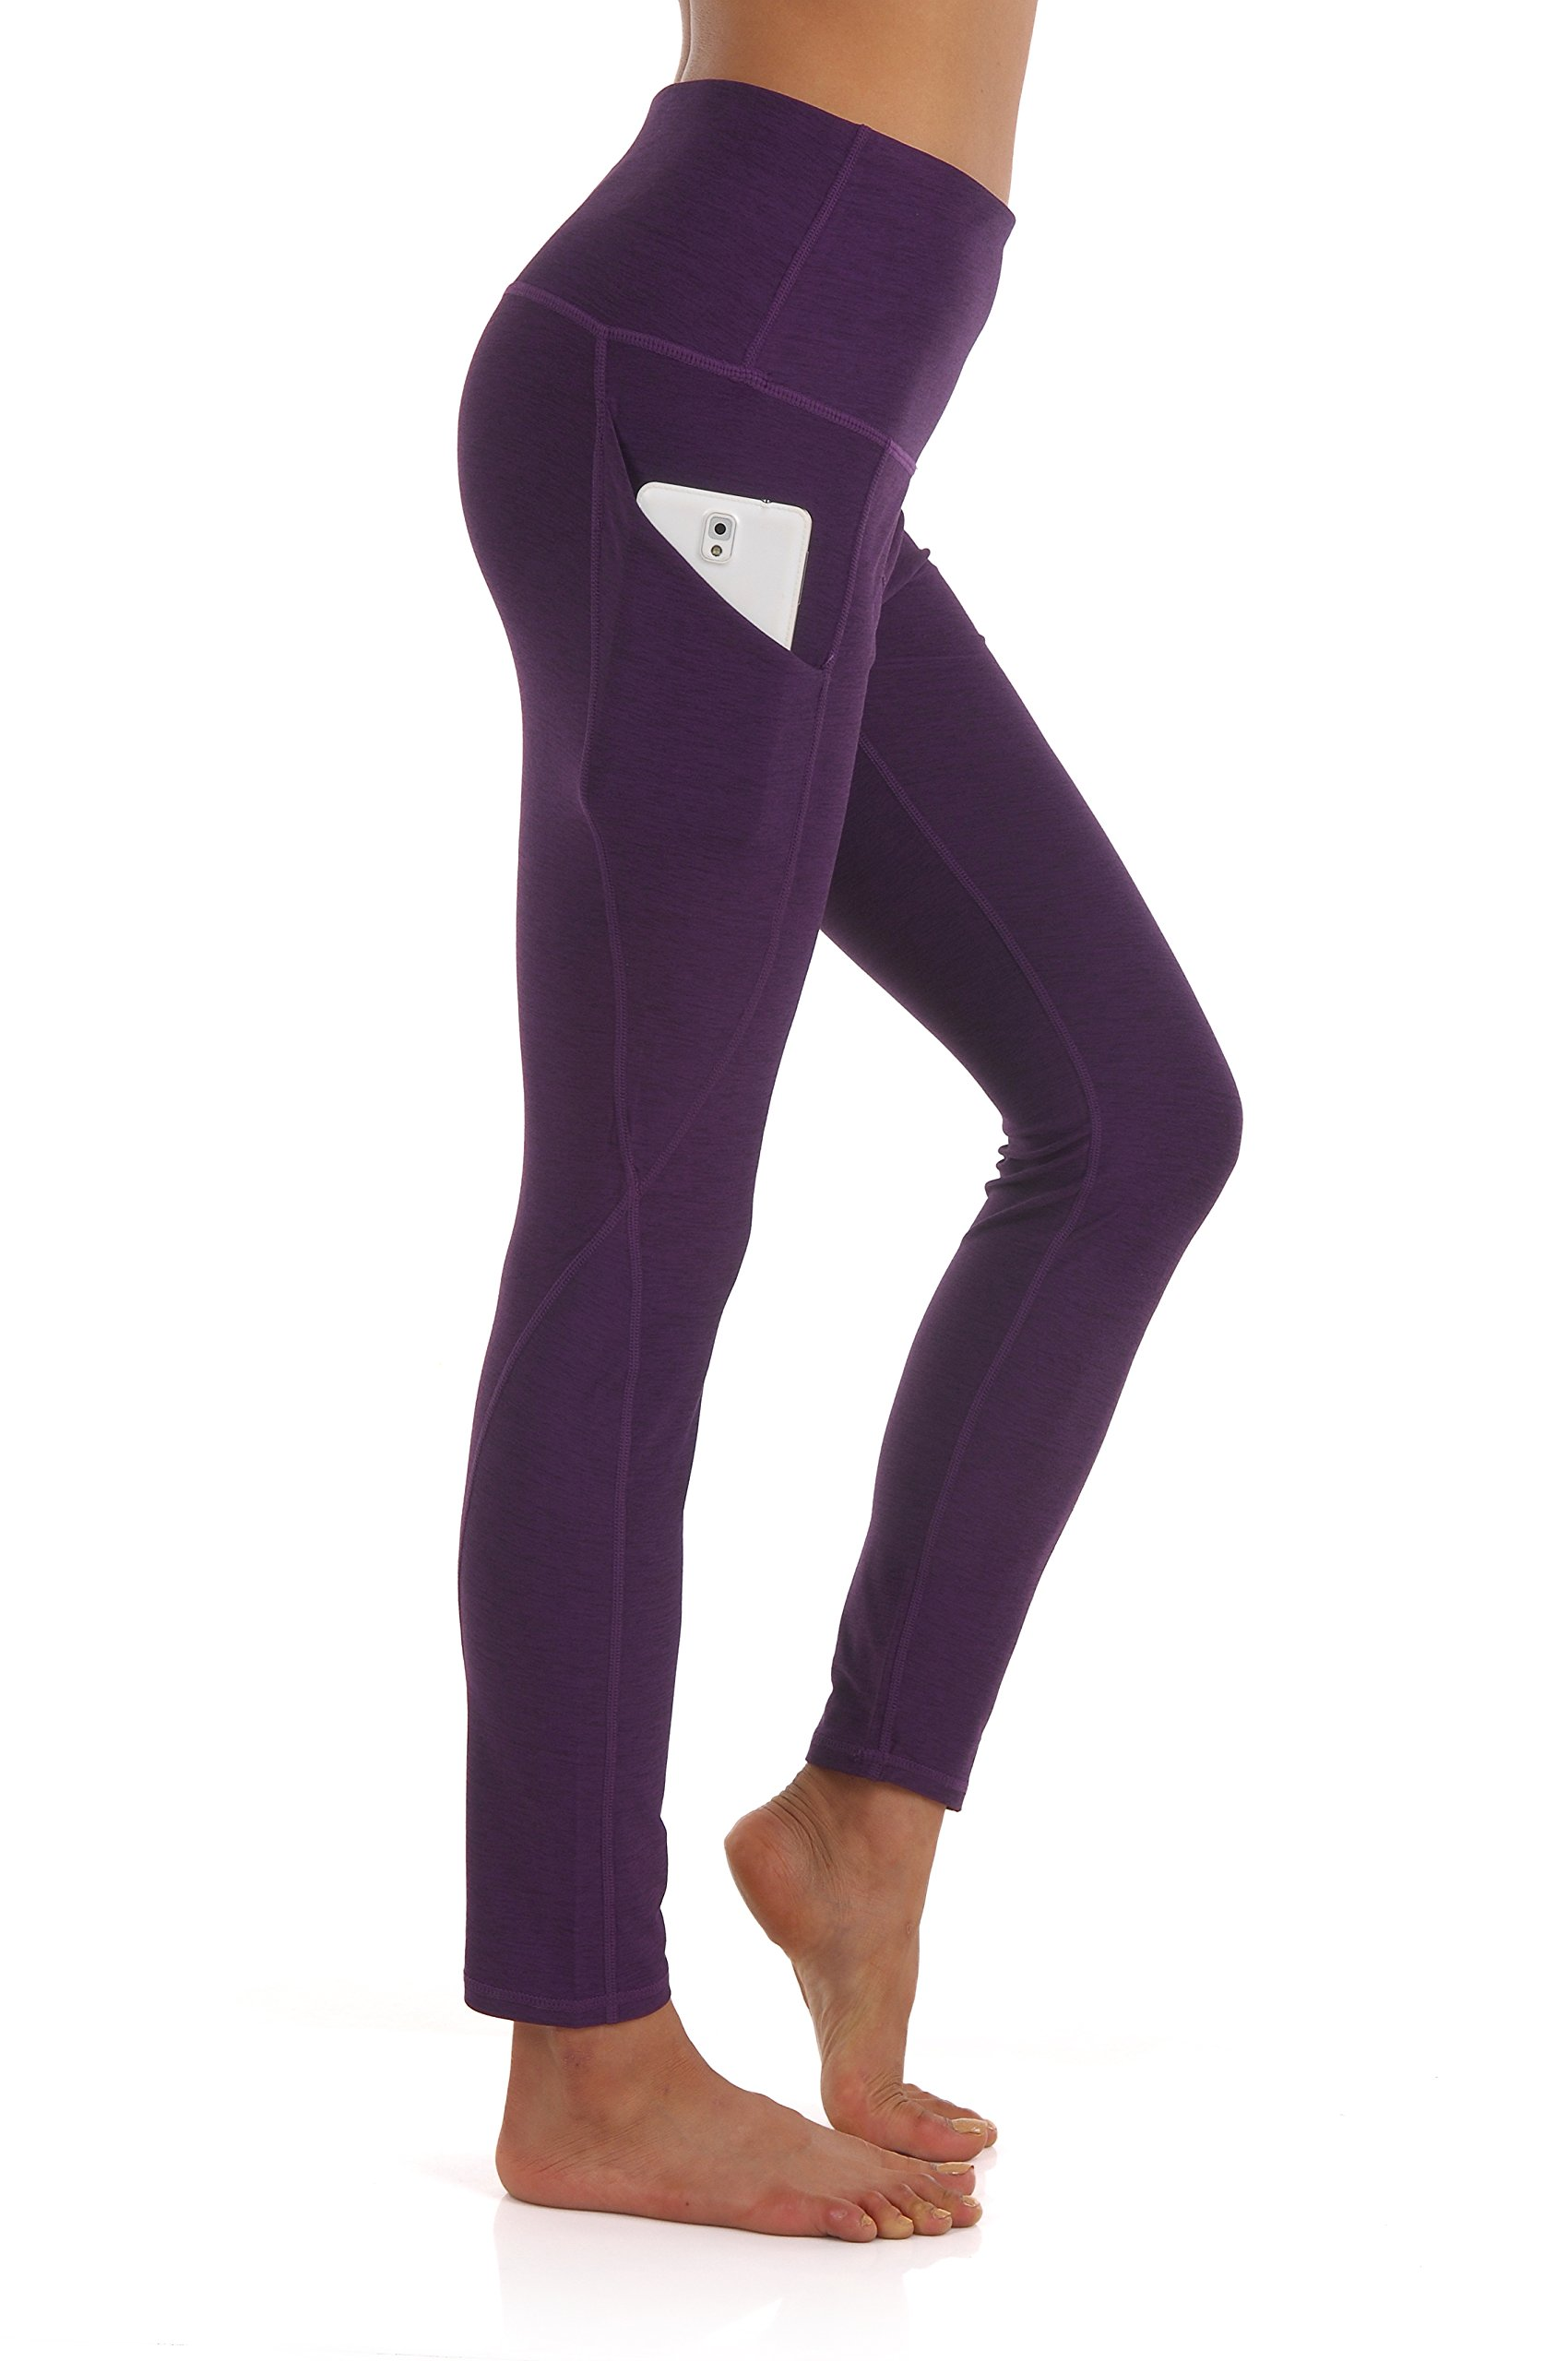 ZEROGSC Women's Yoga Pants - Workout Running Tummy Control Stretch Power Flex Long/Capris Leggings With Out Pockets (YPW111-DeepPurple-Large) by ZEROGSC